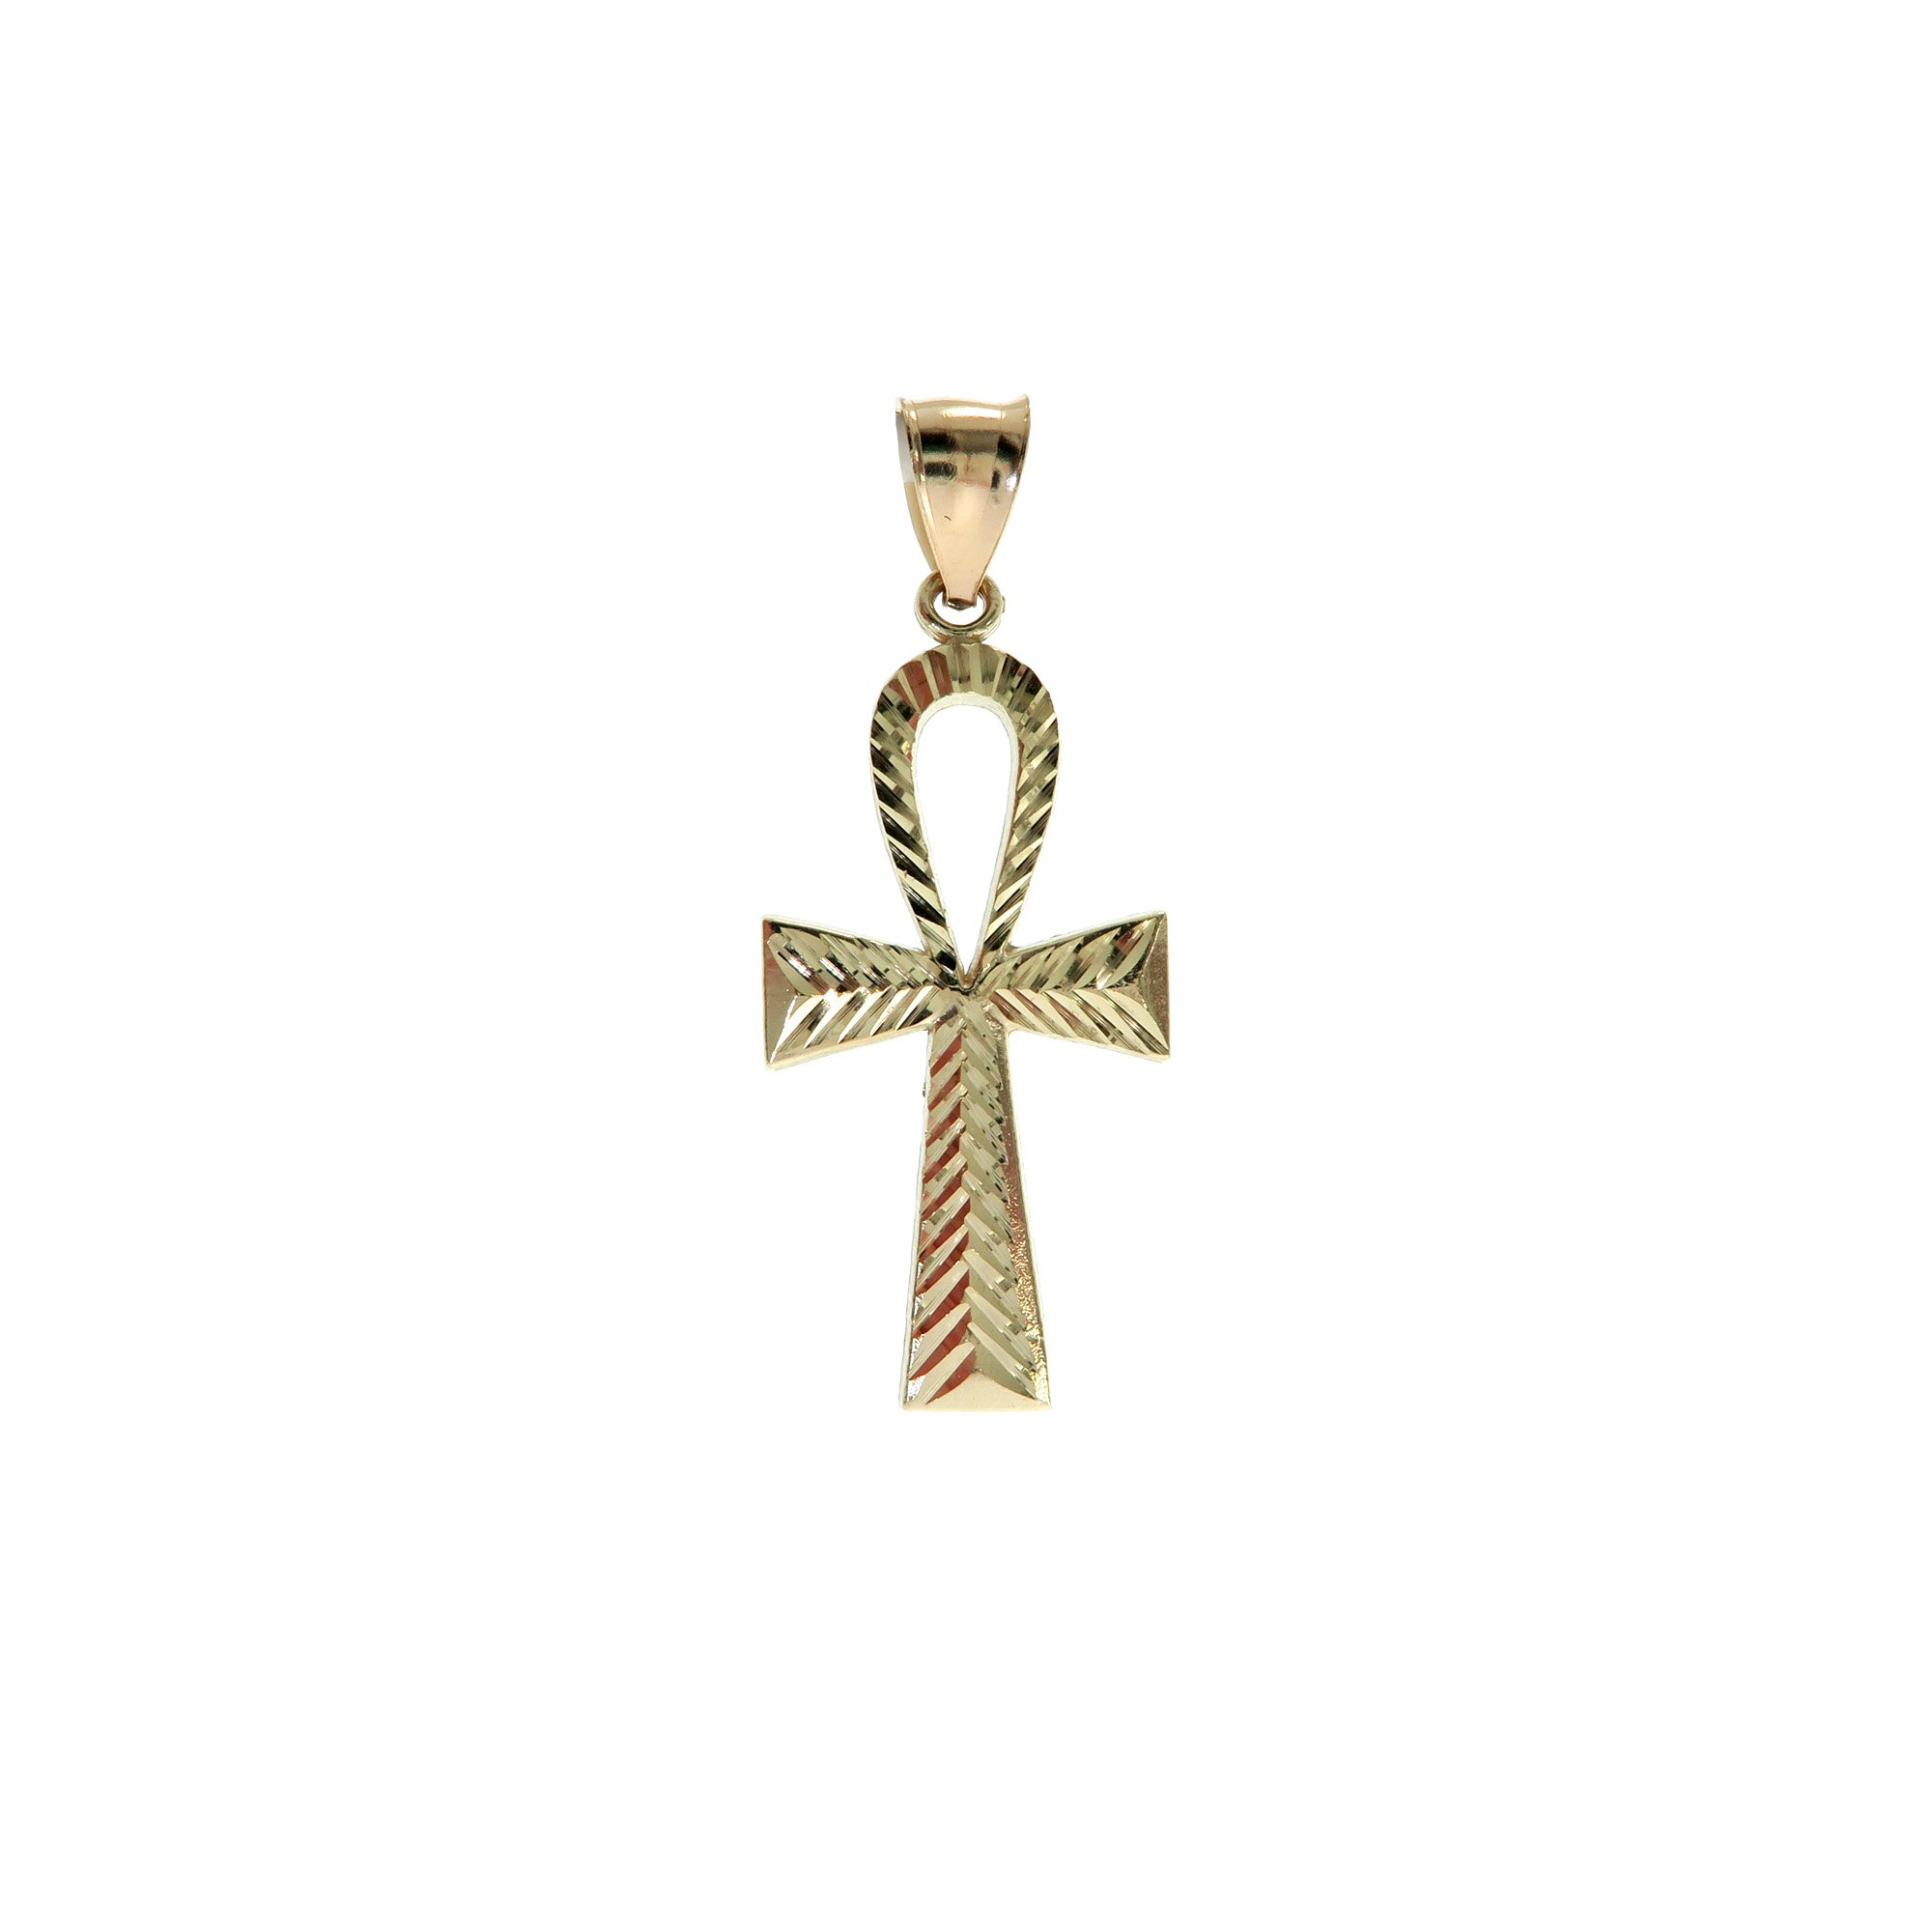 Genuine Stamped Authentic 10K Yellow Two-Tone Gold Charm Pendant Hip Hop Jewelry Gift Christmas Present (Ankh Cross)